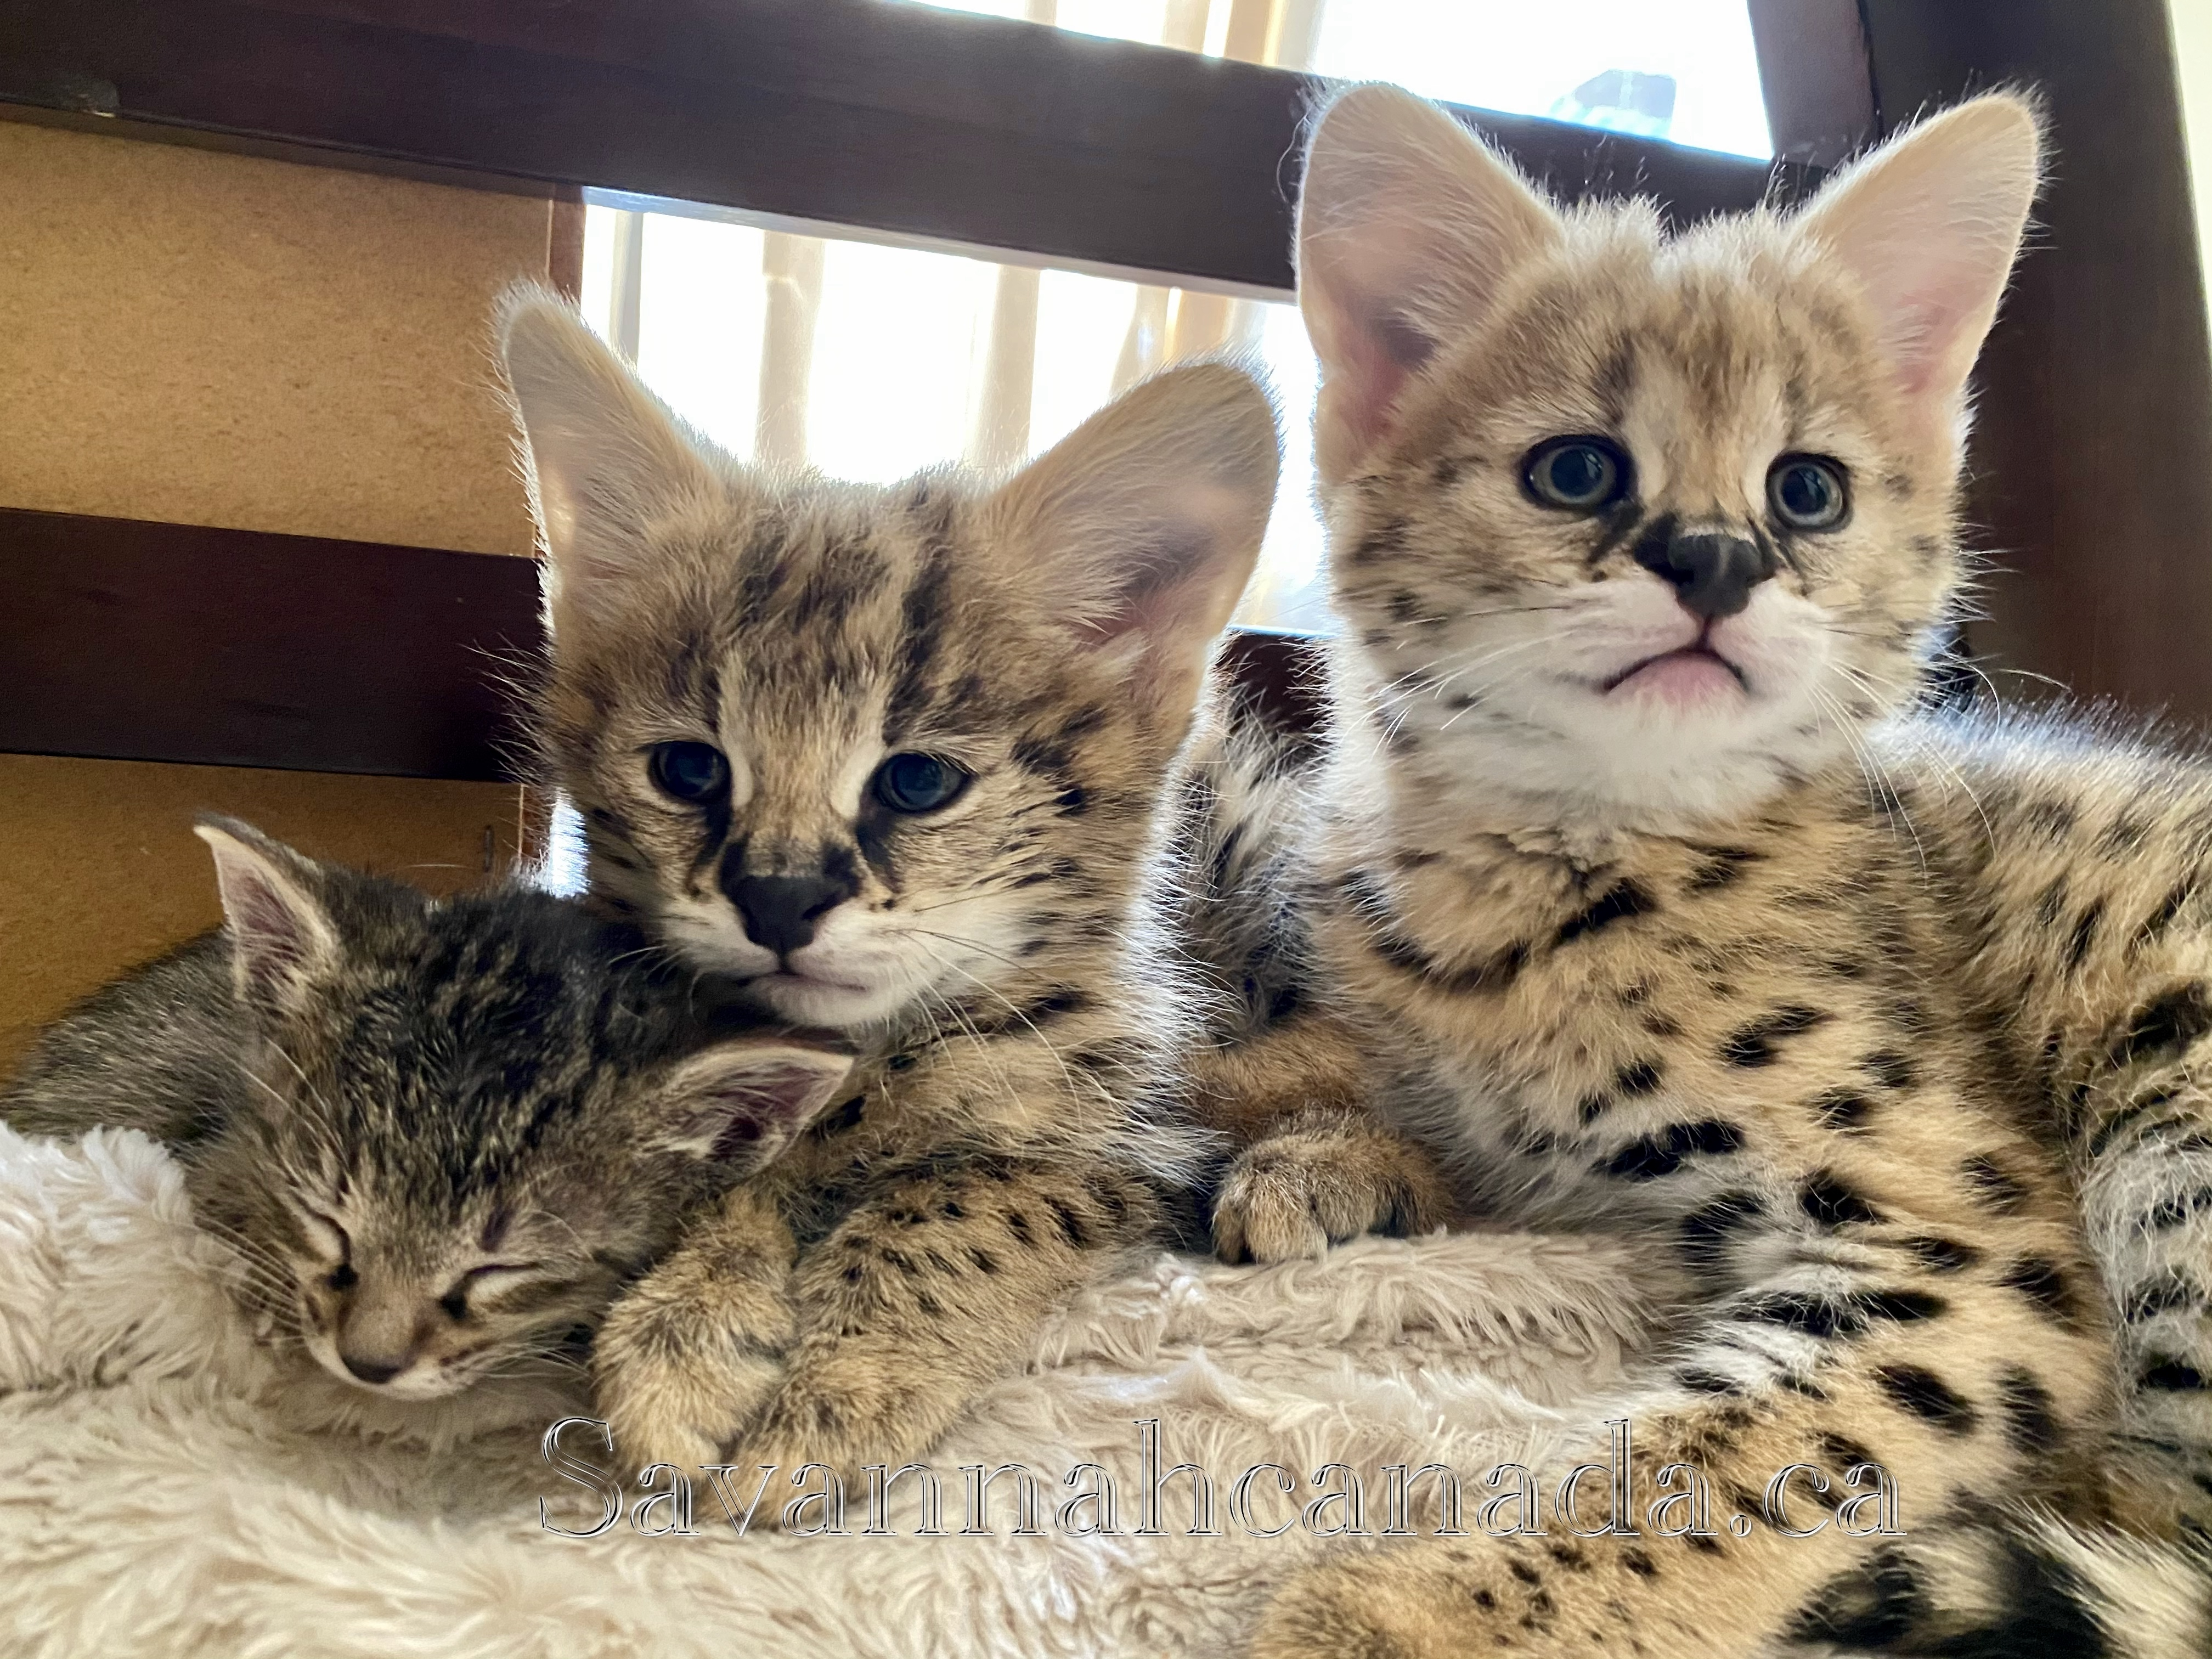 Available Savannah Kitten from Savannah Canada